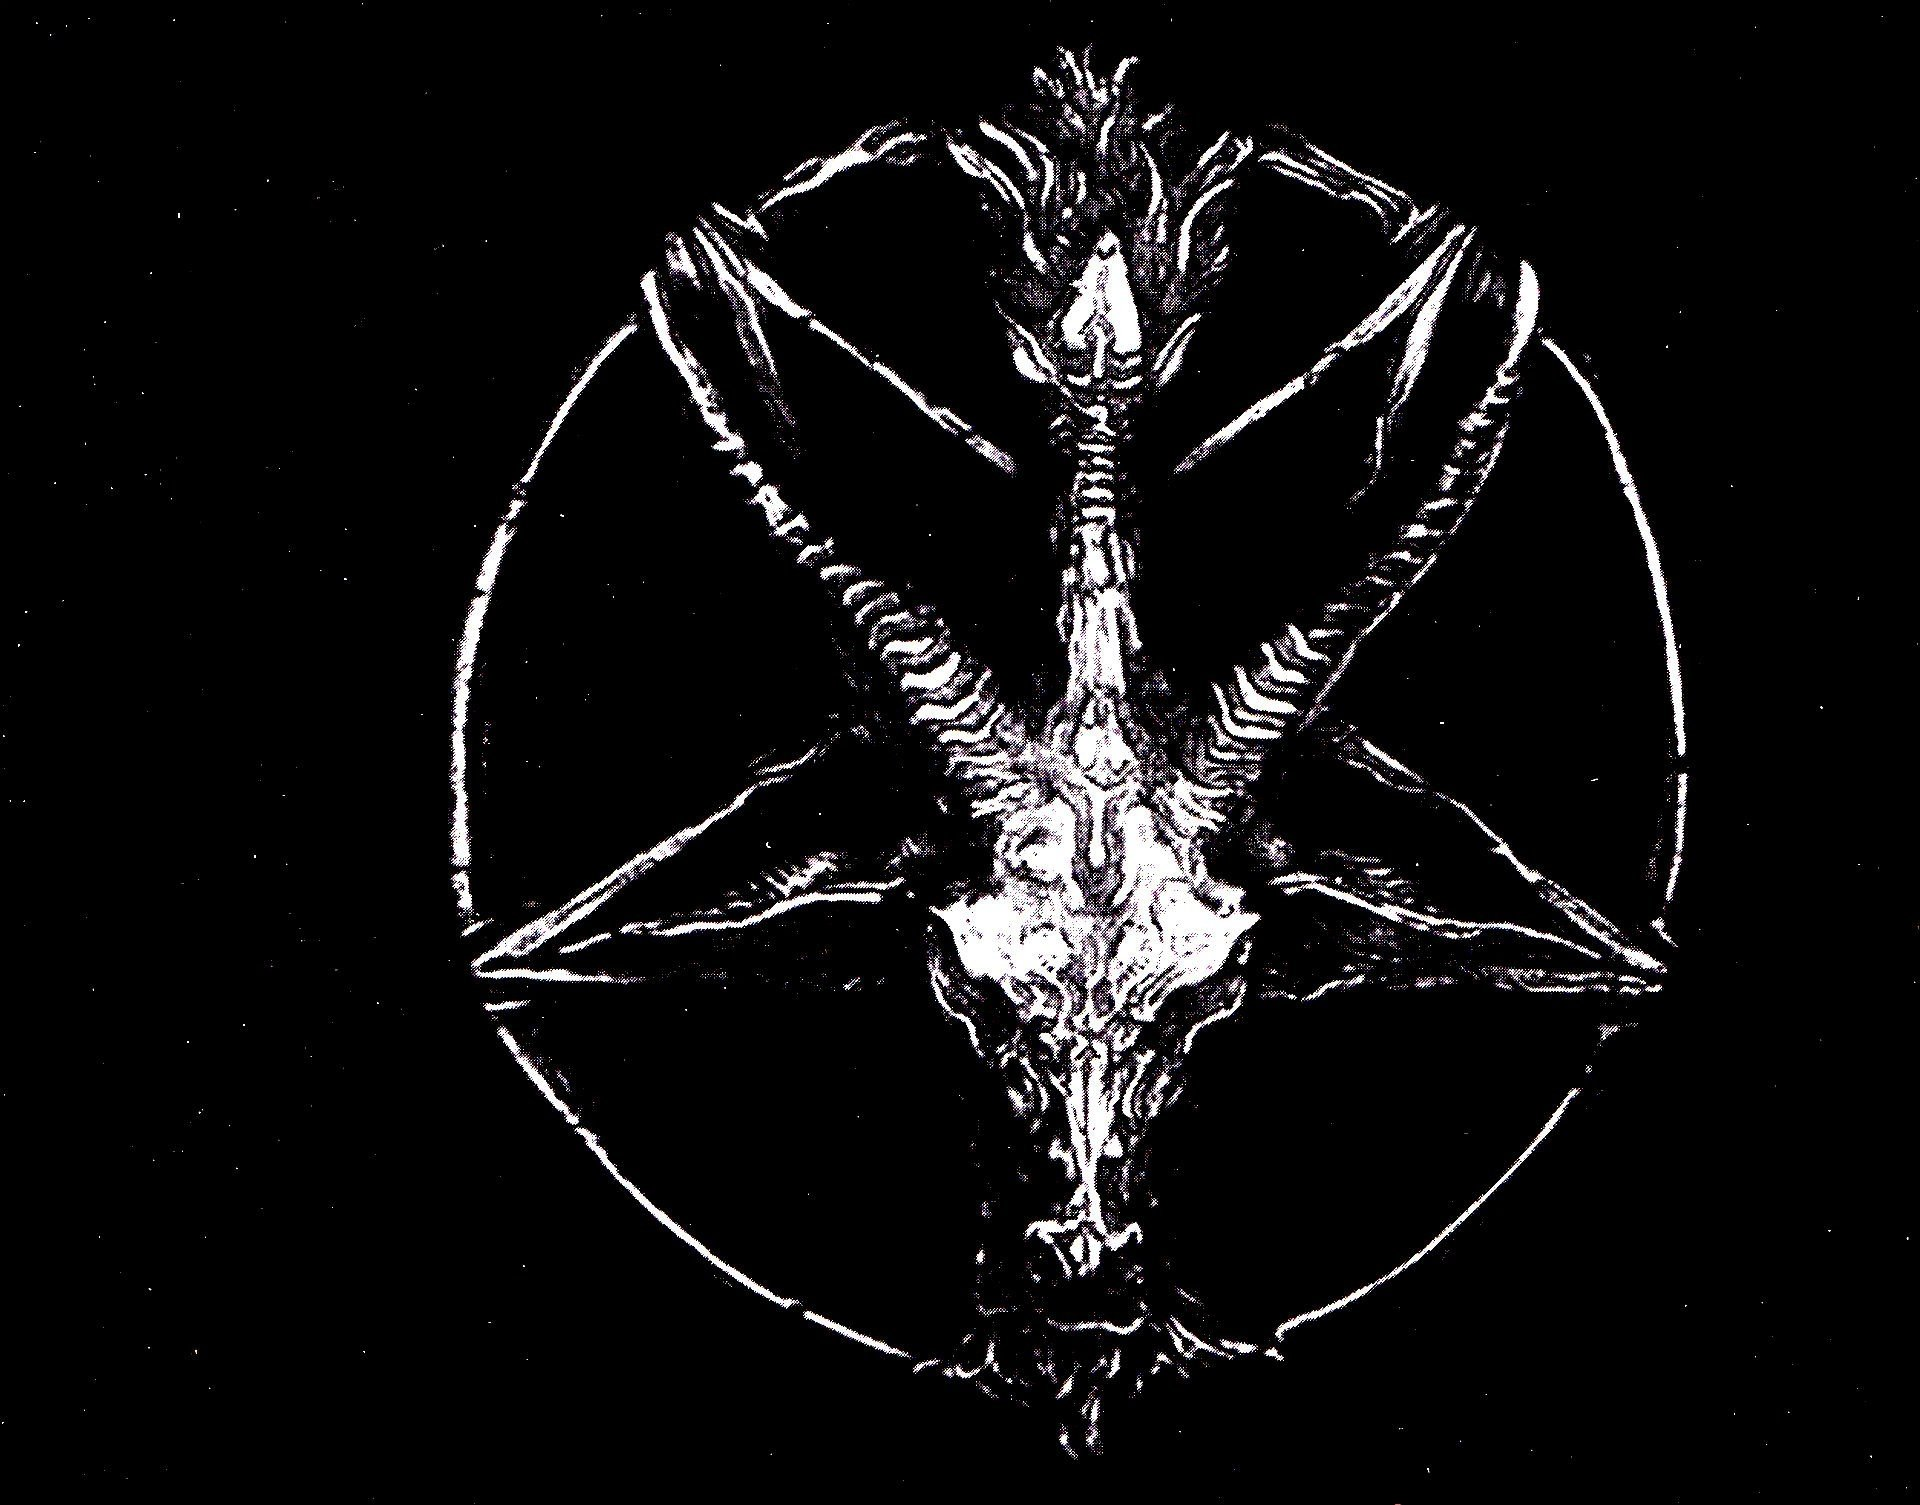 Pagan Wallpaper For Android: Satanic Wallpaper For Android